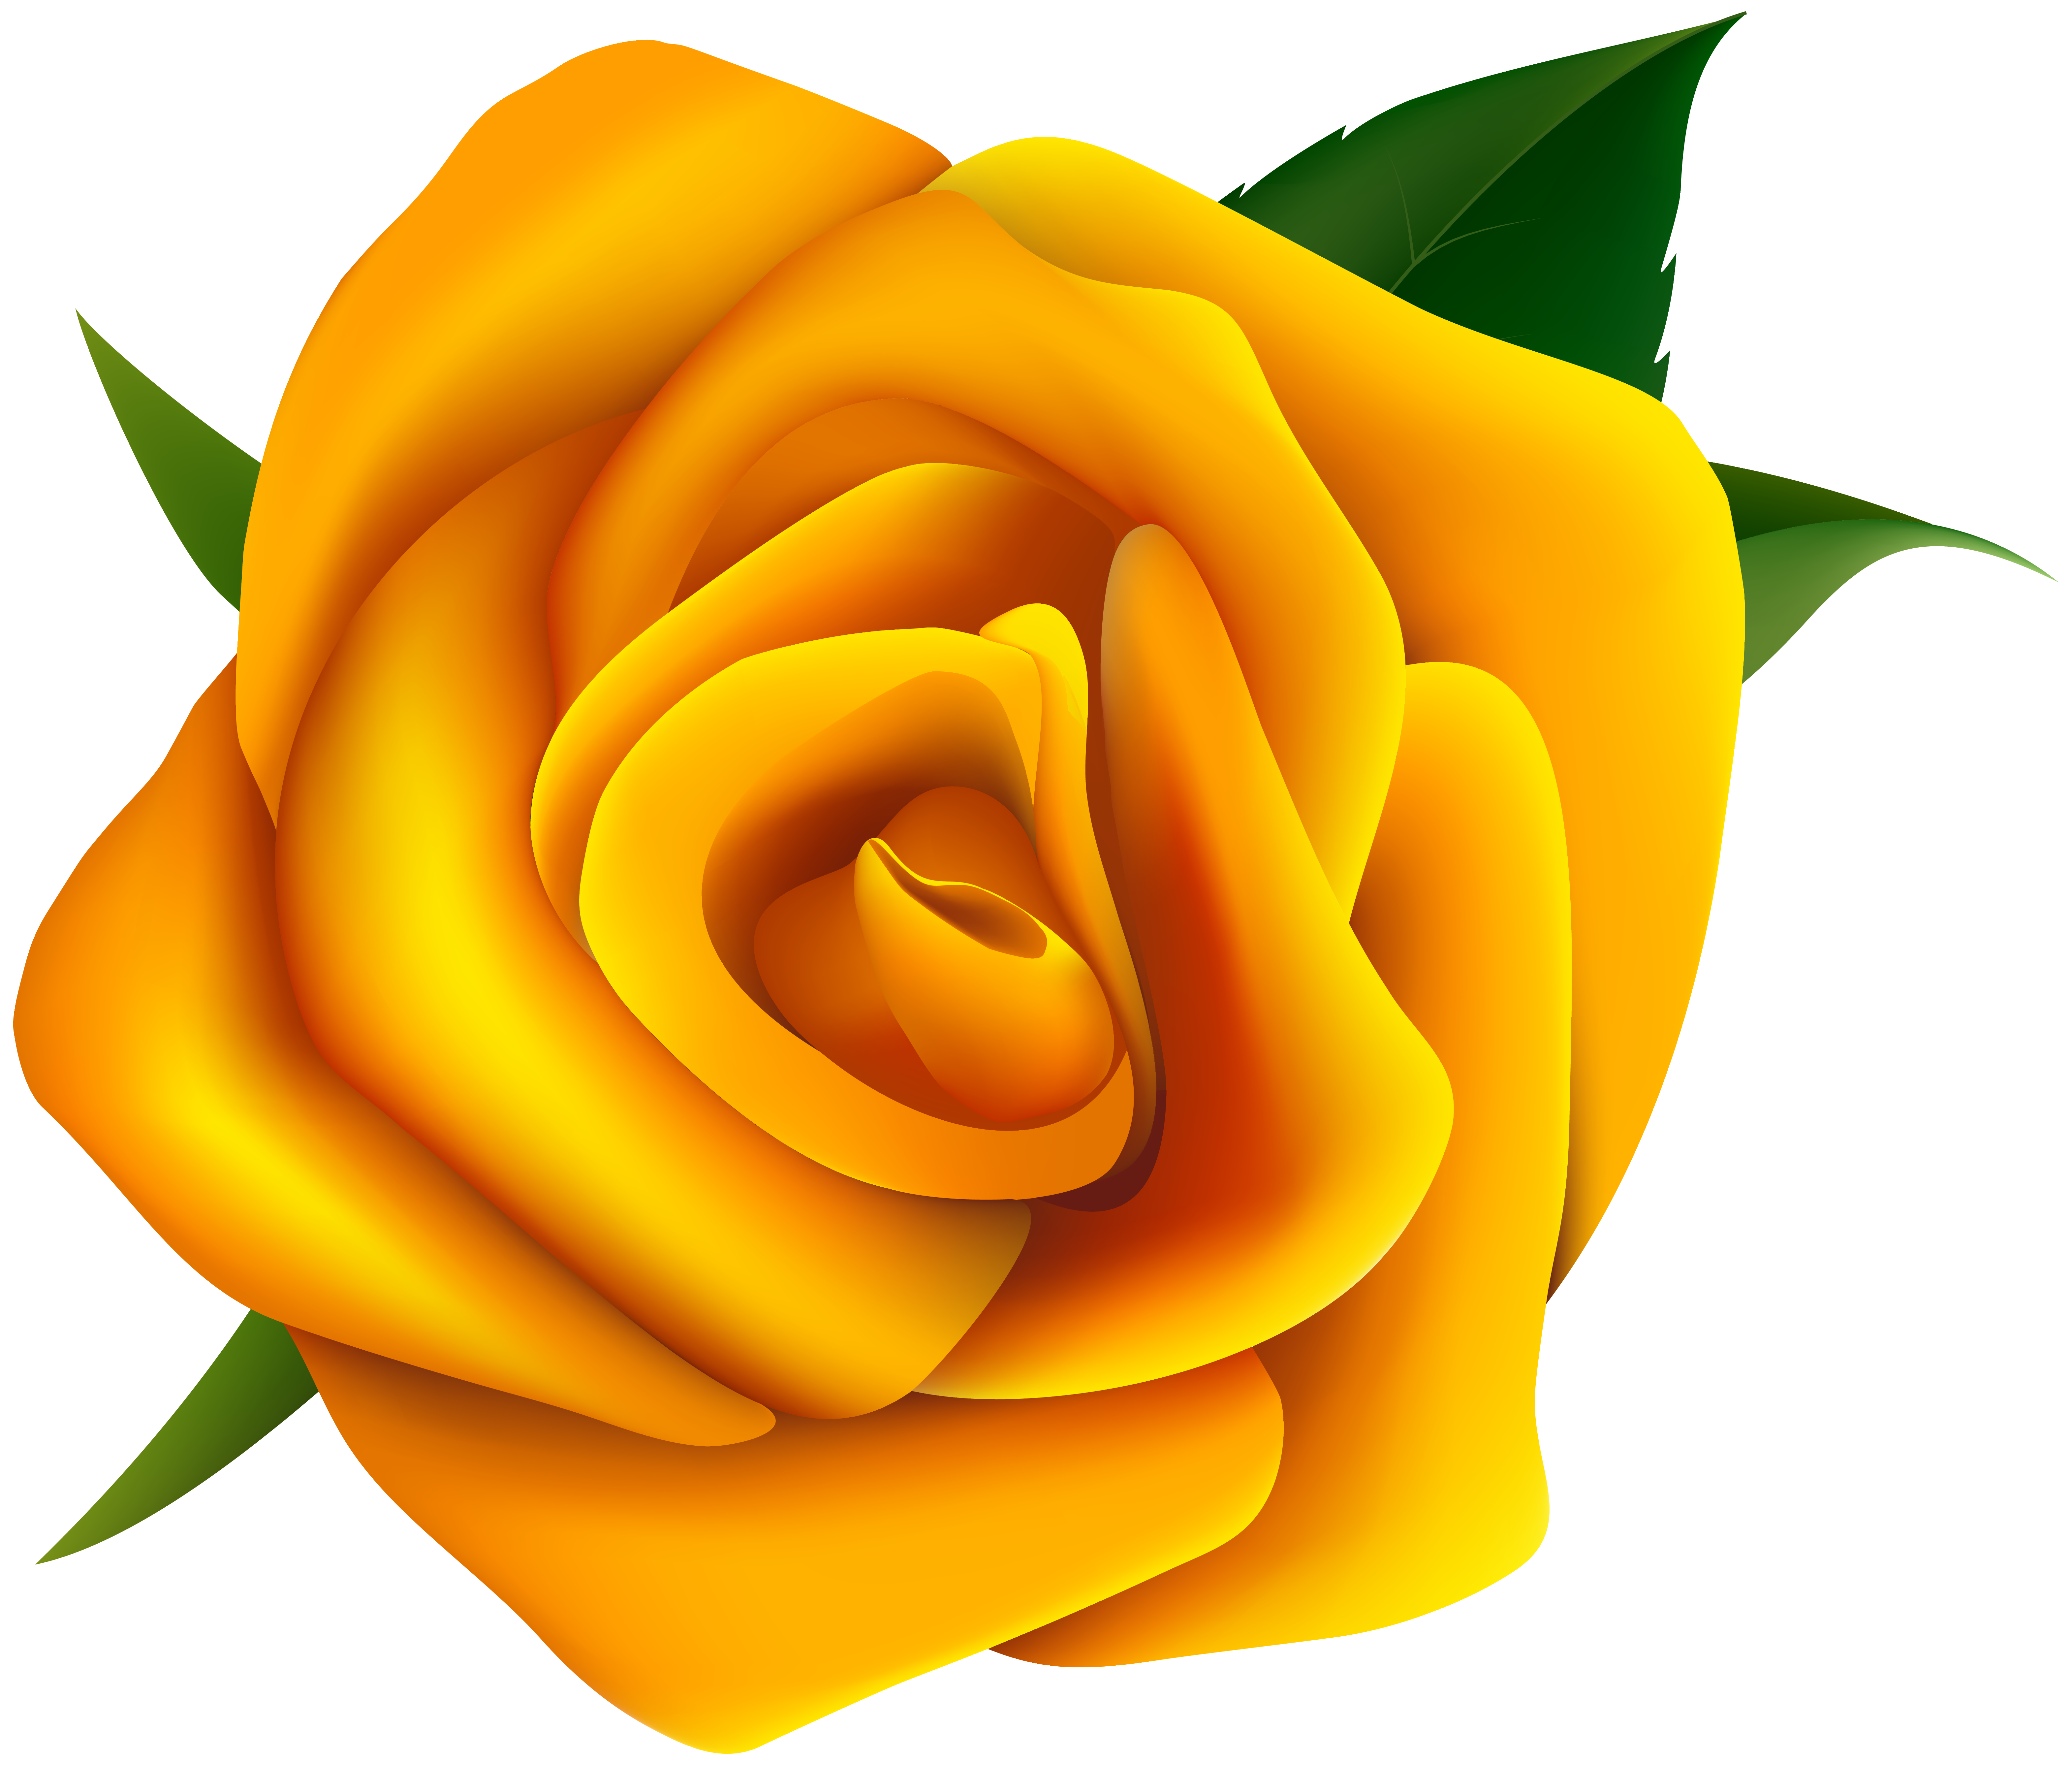 jpg royalty free library Rose png image gallery. 5 clipart yellow